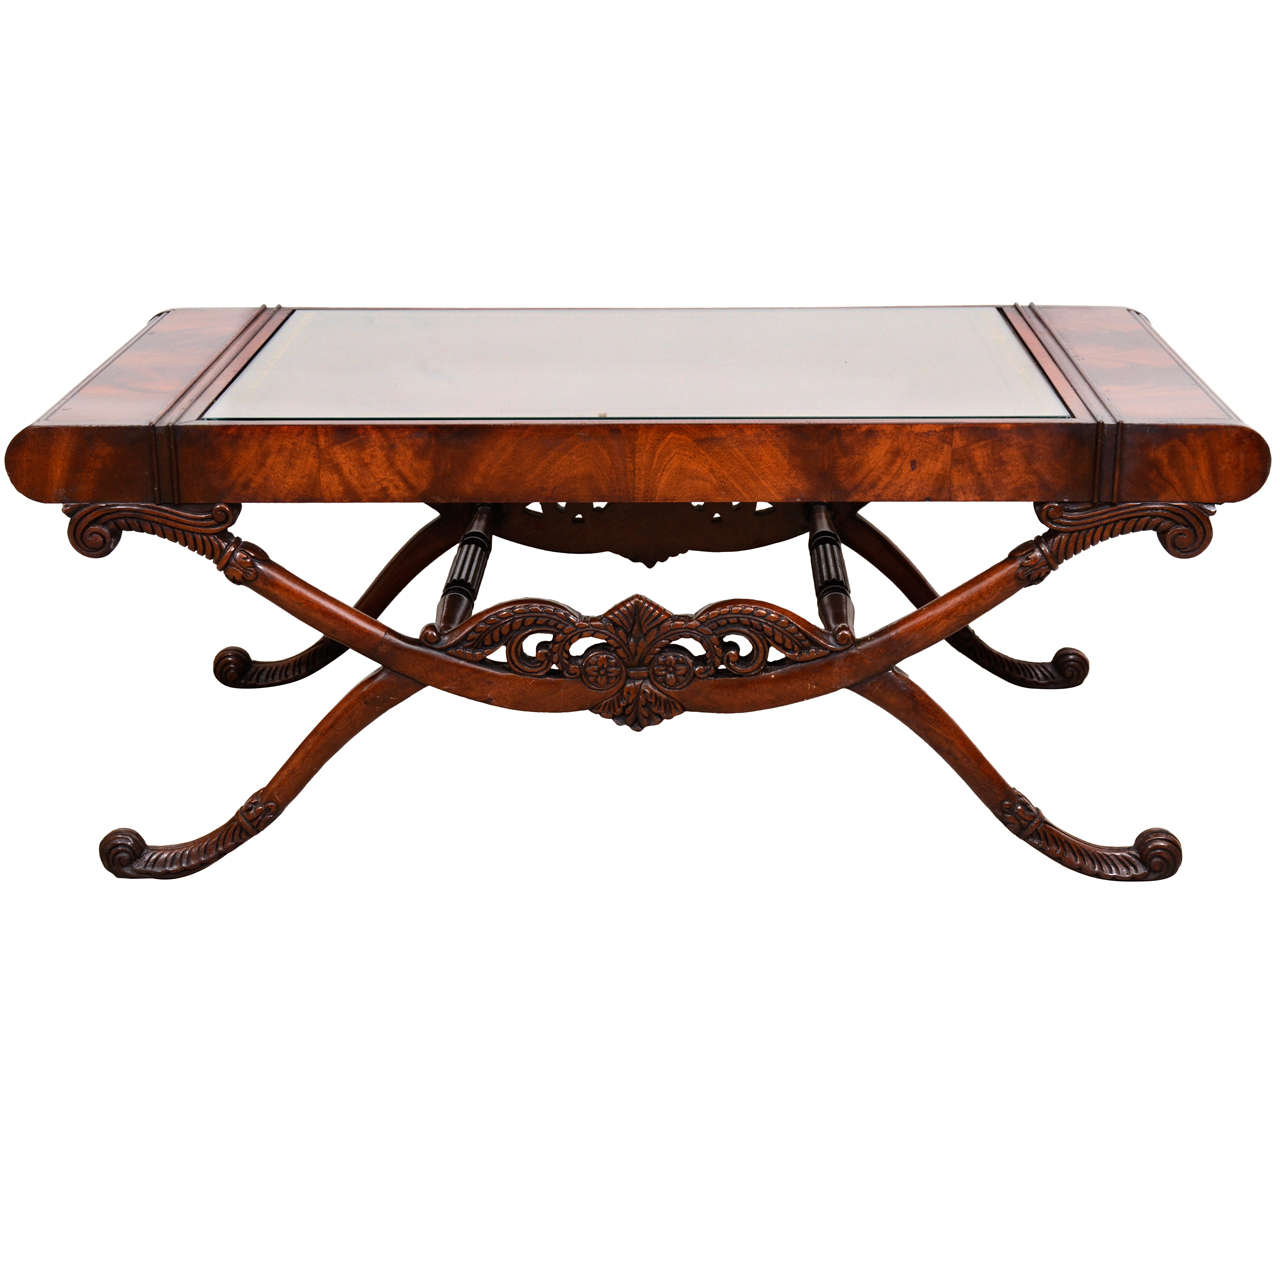 American regency style mahogany and leather top coffee table at 1stdibs Coffee table with leather top